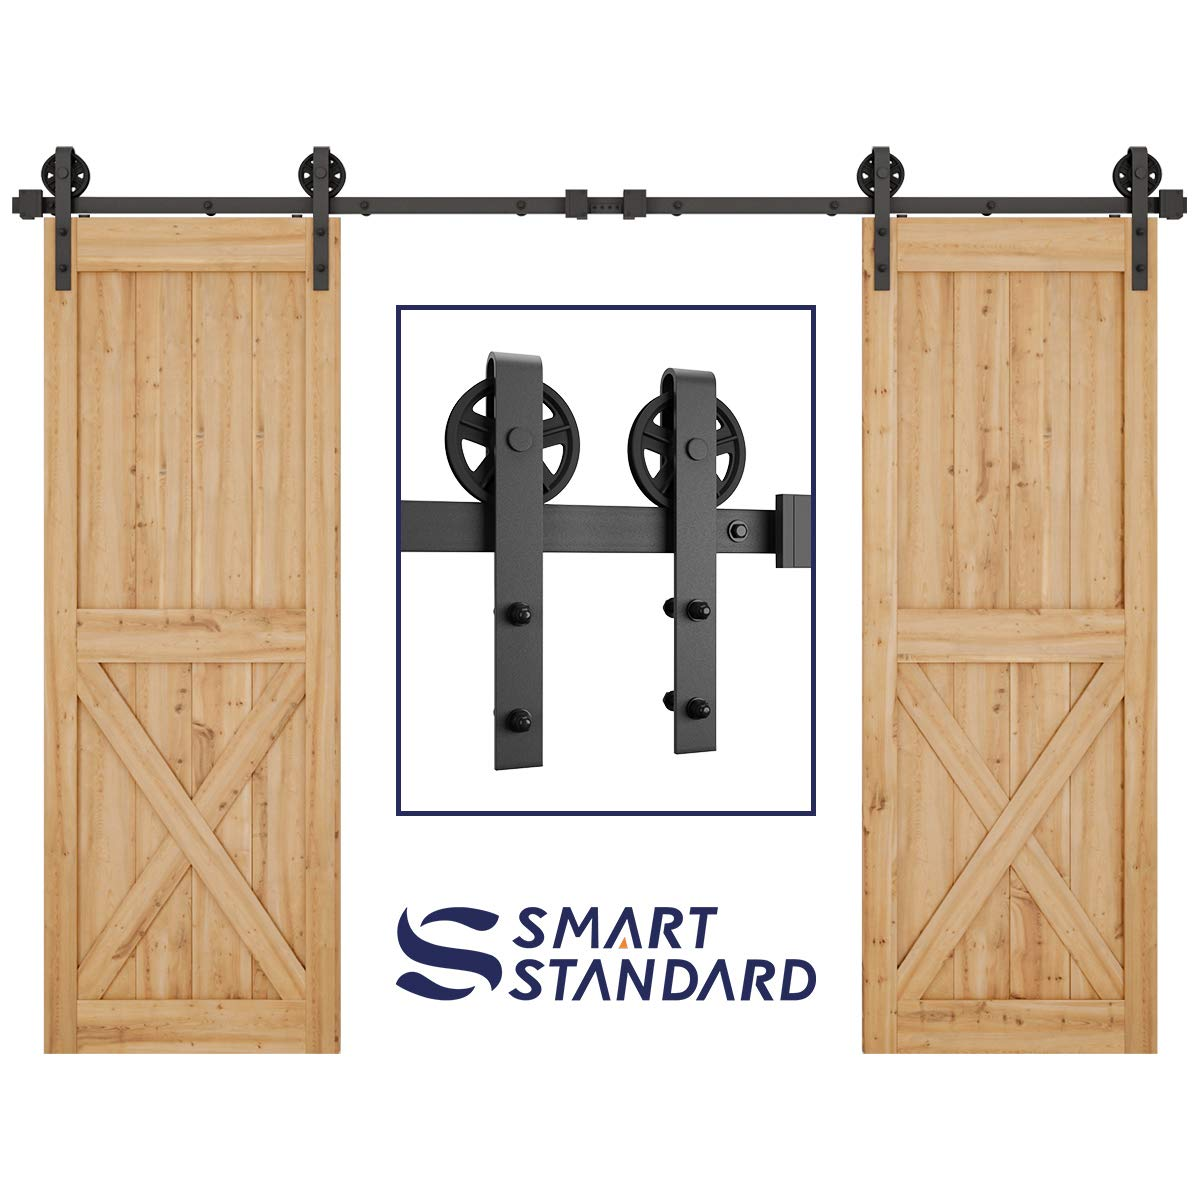 """SMARTSTANDARD 10FT Double Gate Heavy Duty Sturdy Sliding Barn Door Hardware Kit, Two-Piece Rail, Black, Smoothly and Quietly, Easy to Install, Fit 30"""" Wide DoorPanel (Big Industrial Wheel Hanger)"""